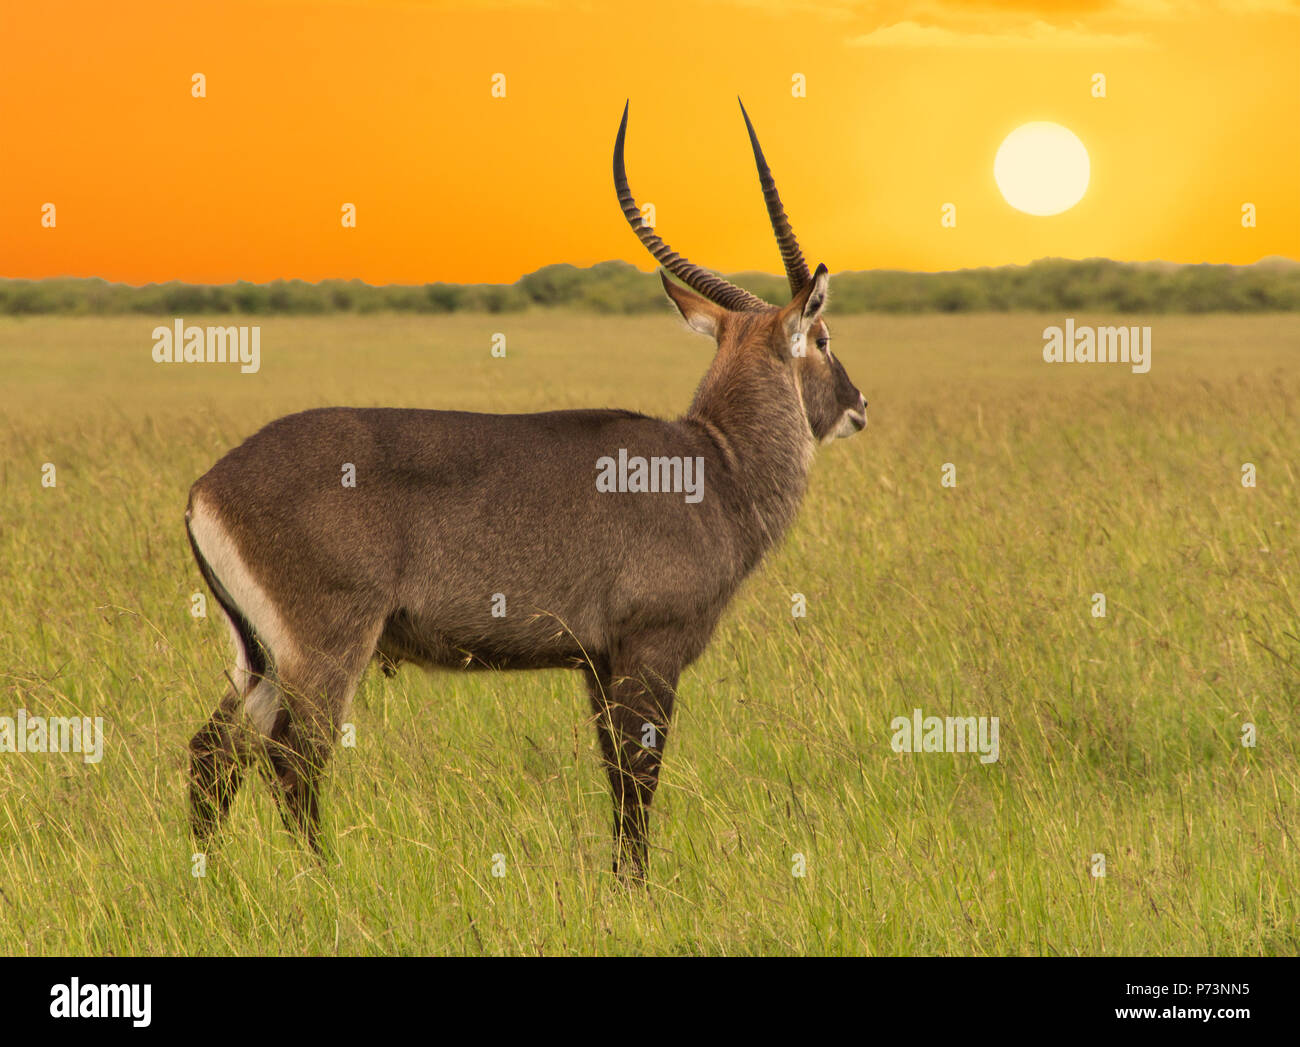 The male antelope in the vast african savannah at sunset - Stock Image